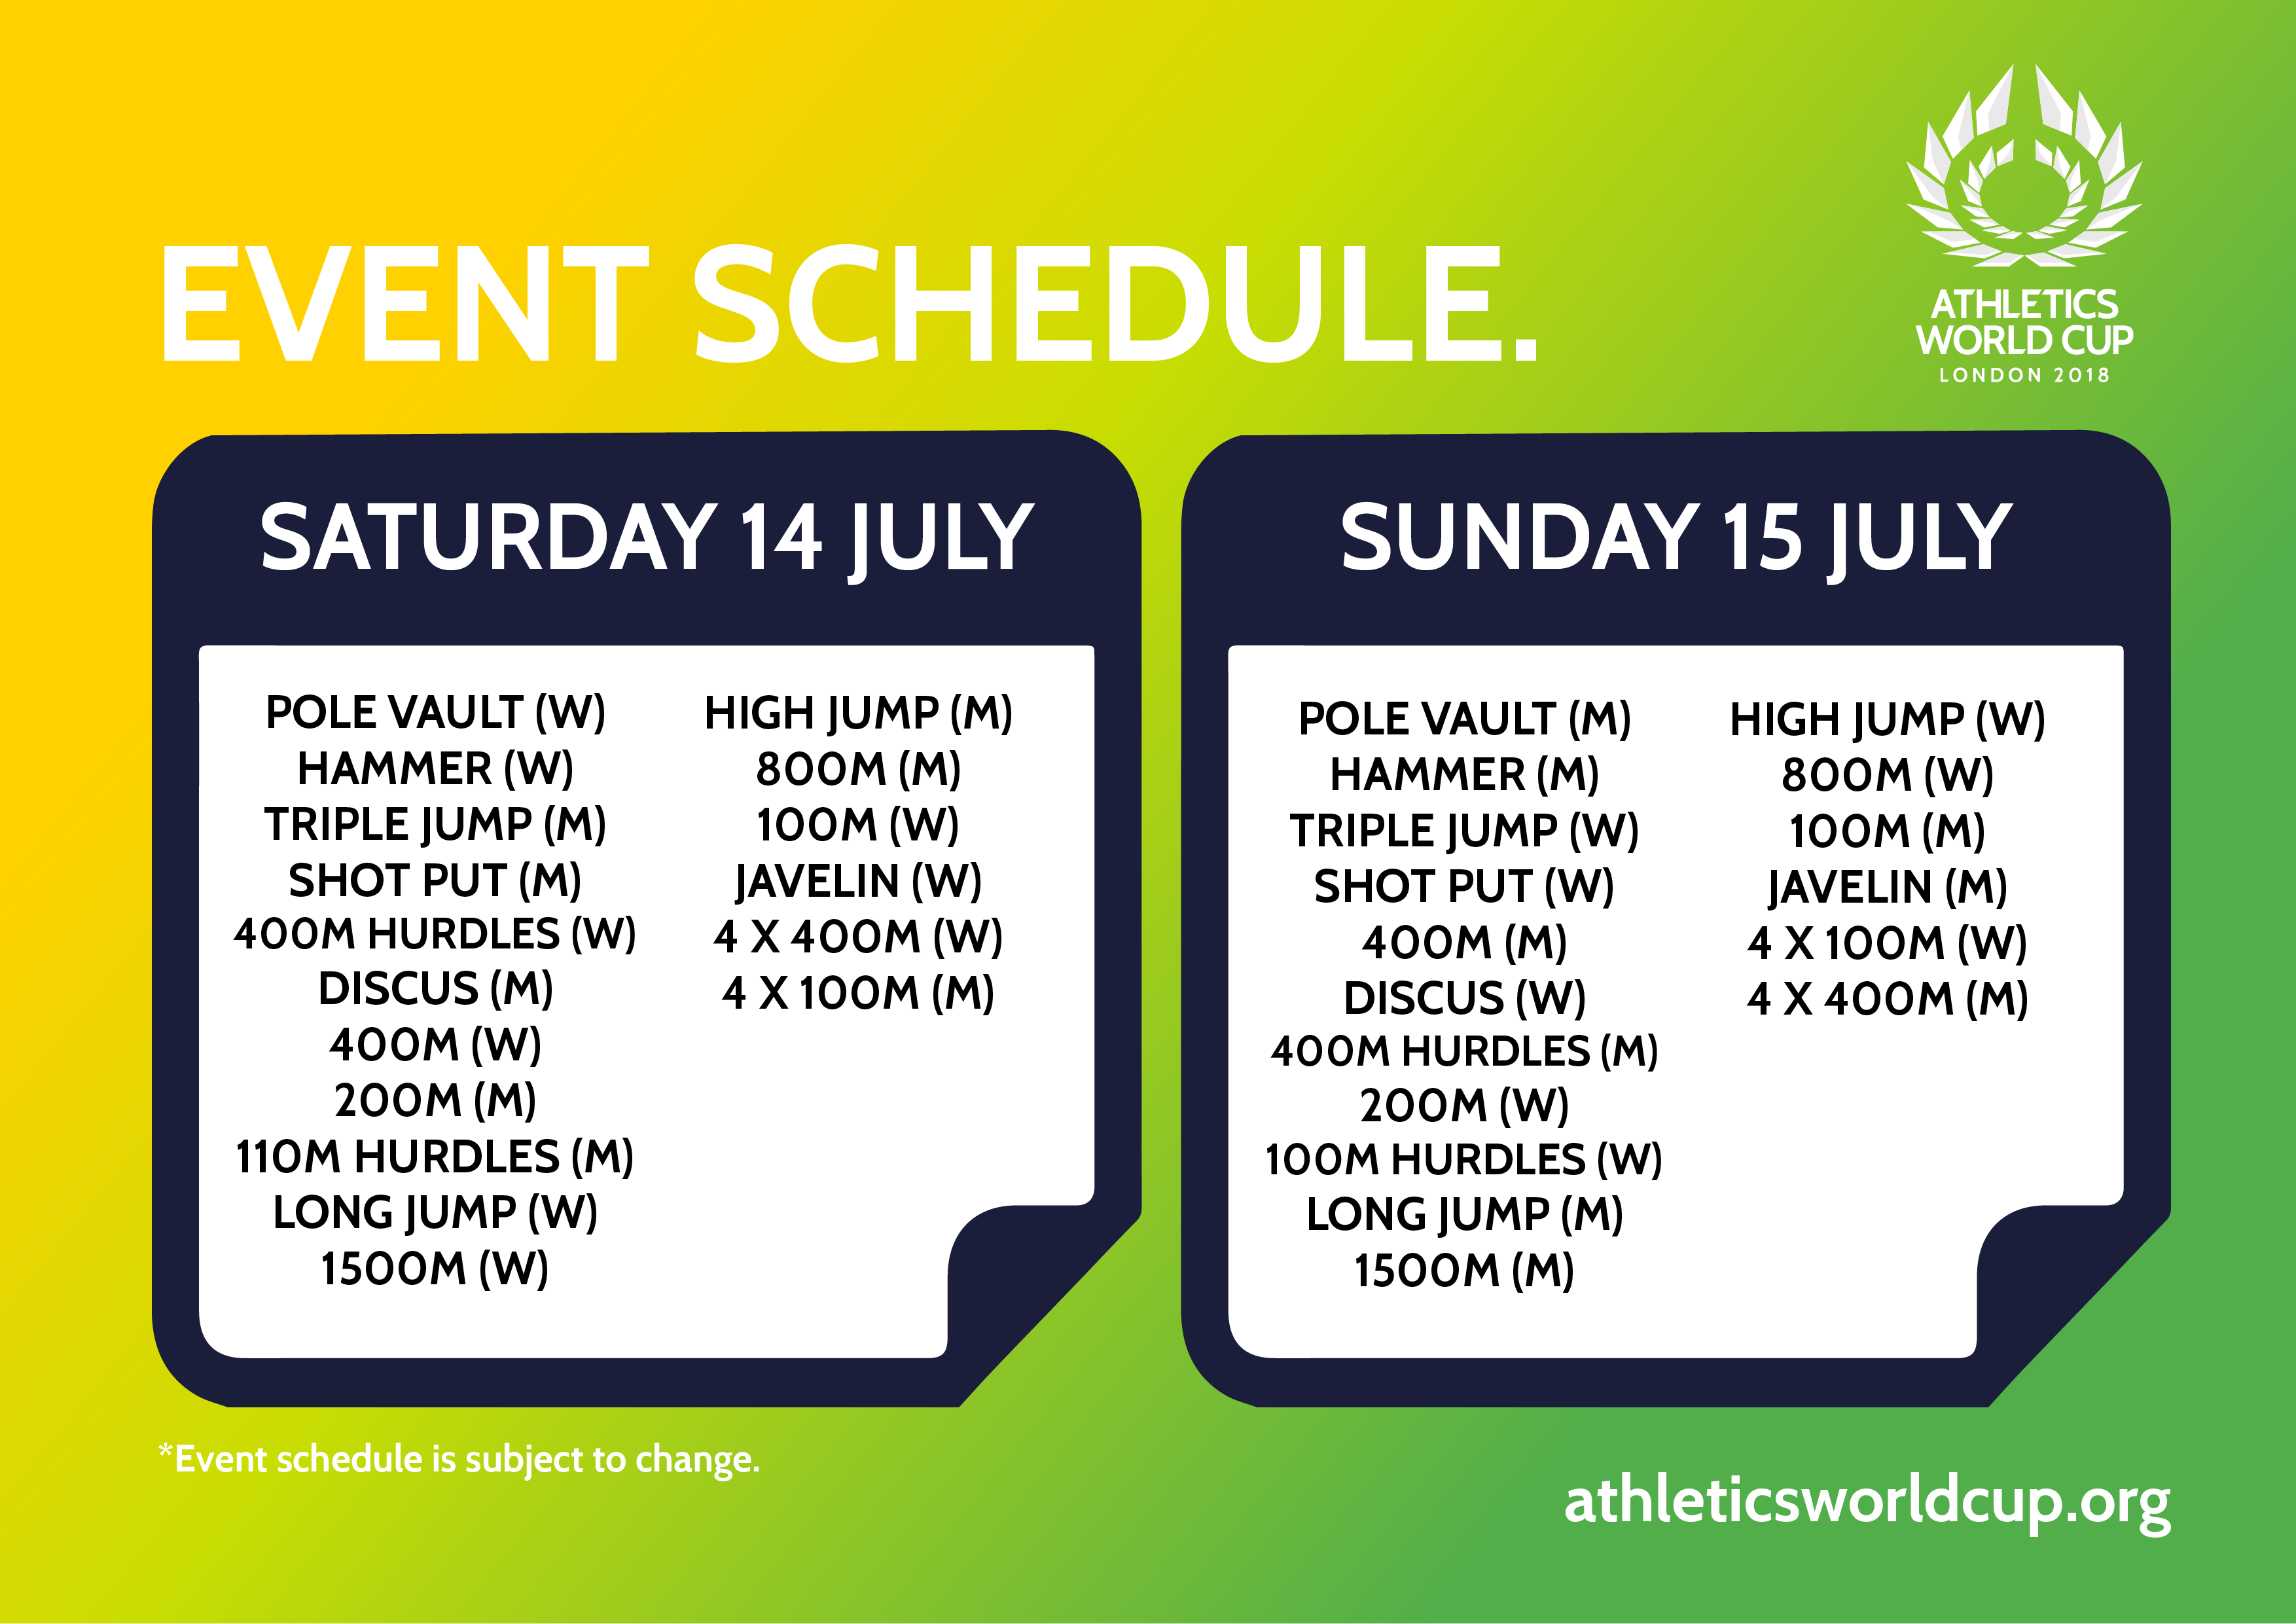 event schedule revealed ahead of inaugural athletics world cup the